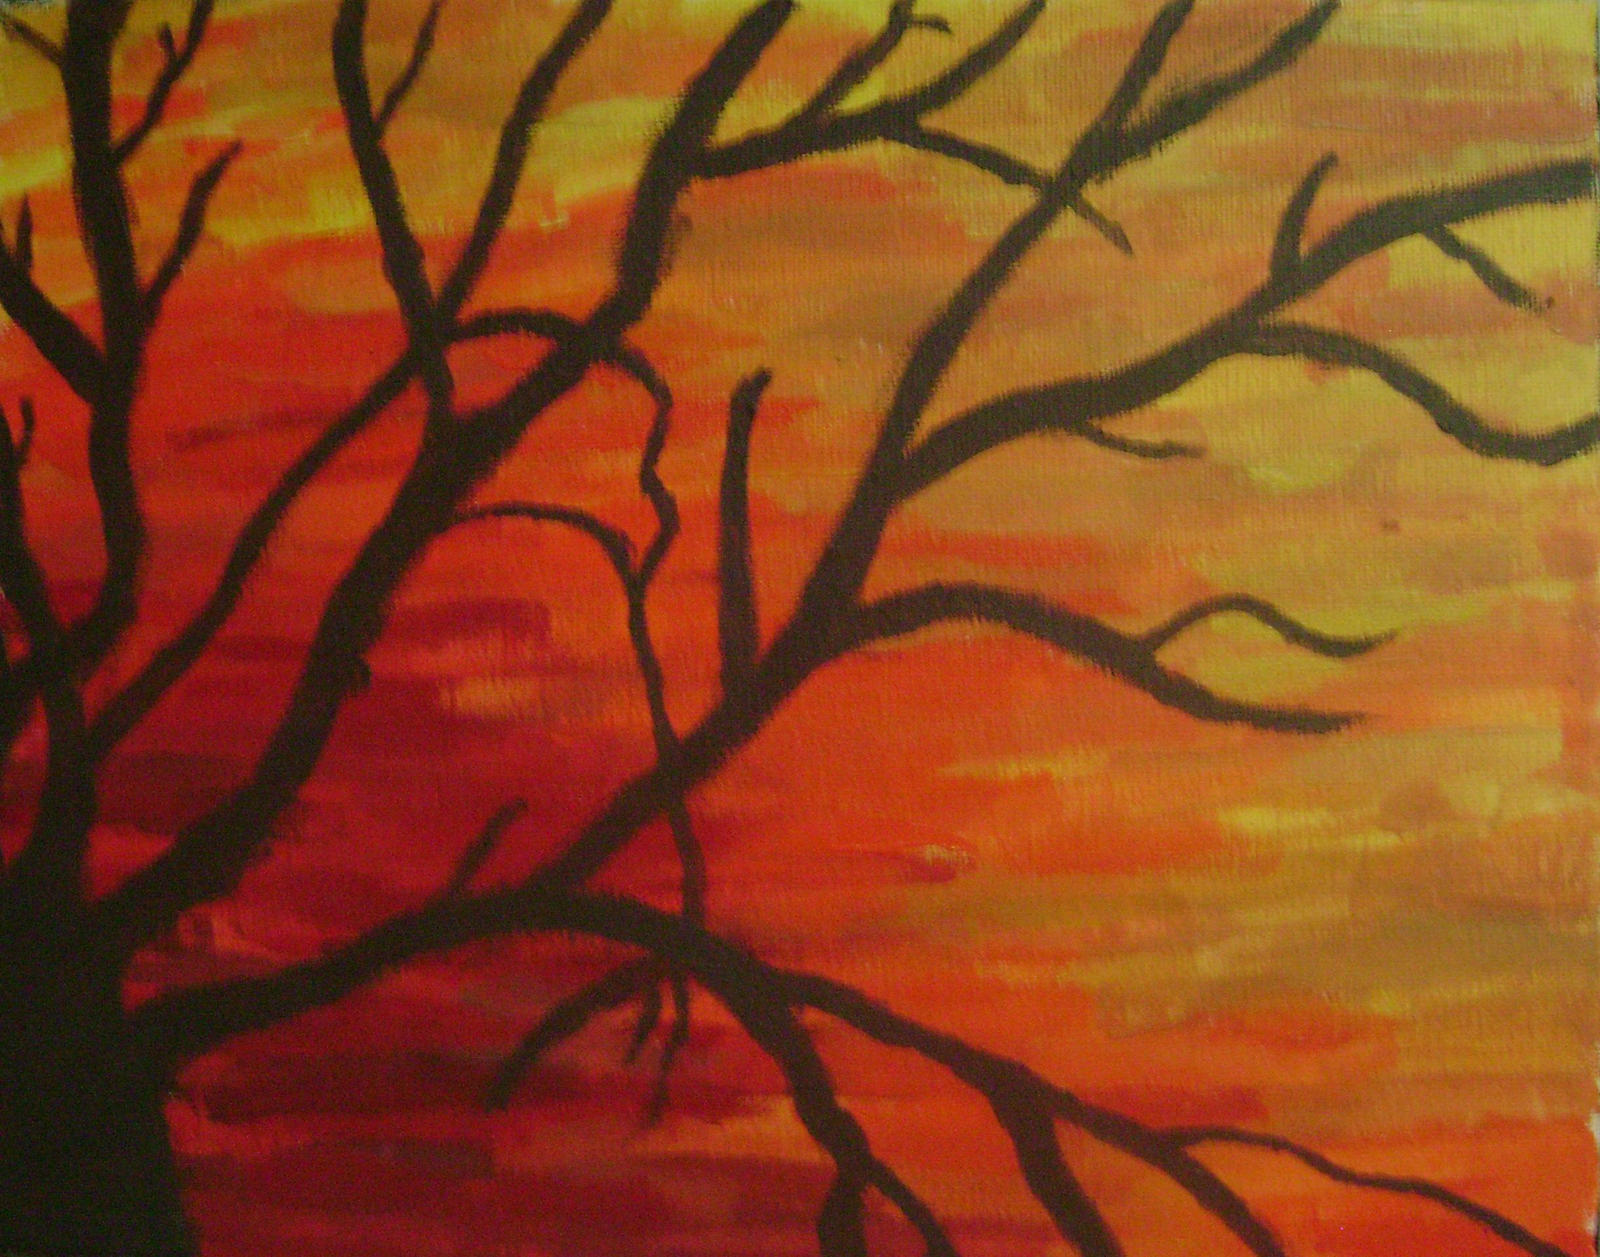 Silhouette Tree Oil Painting By Pokey274